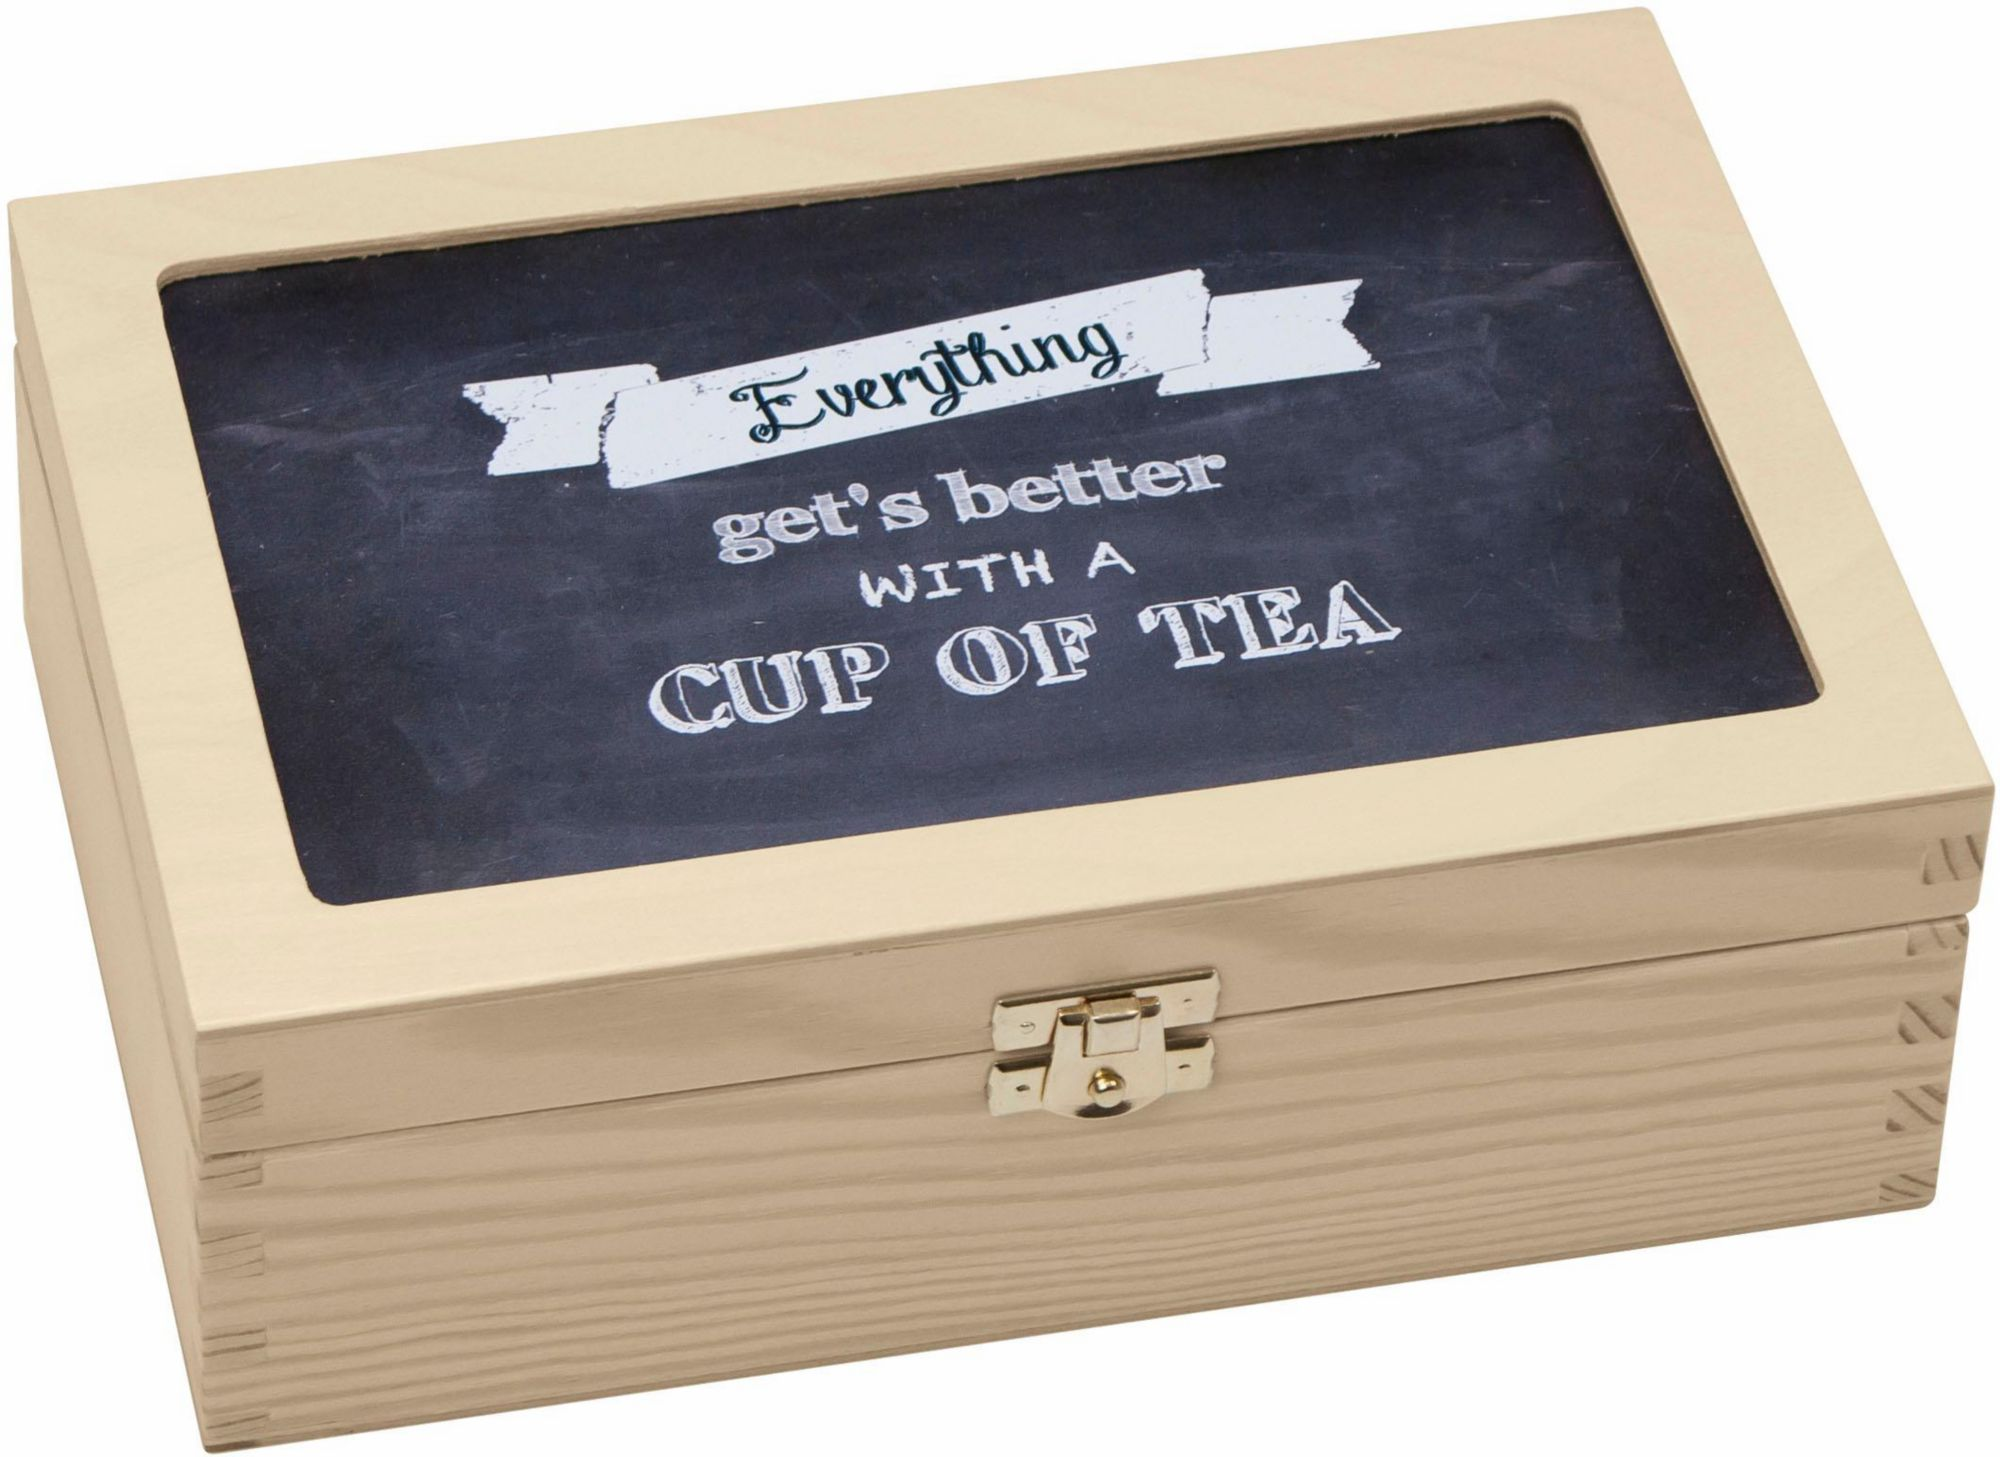 CONTENTO Contento Teebox »Everything gets better with a cup of tea«, Holz